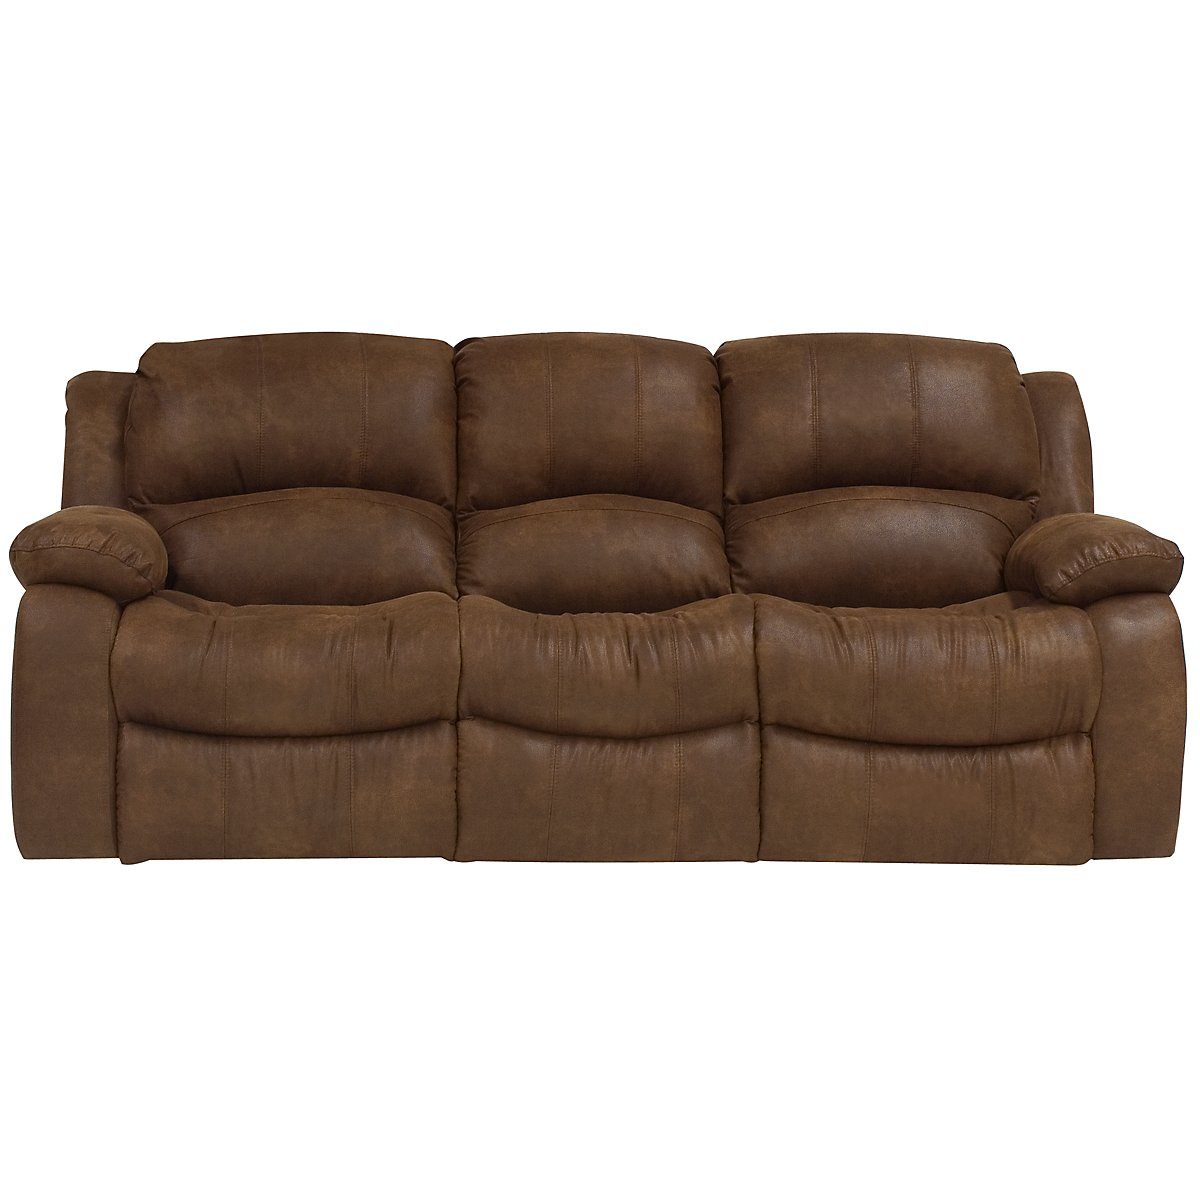 Microsuede reclining sofa amazing microfiber reclining for Microfiber sectional sofa